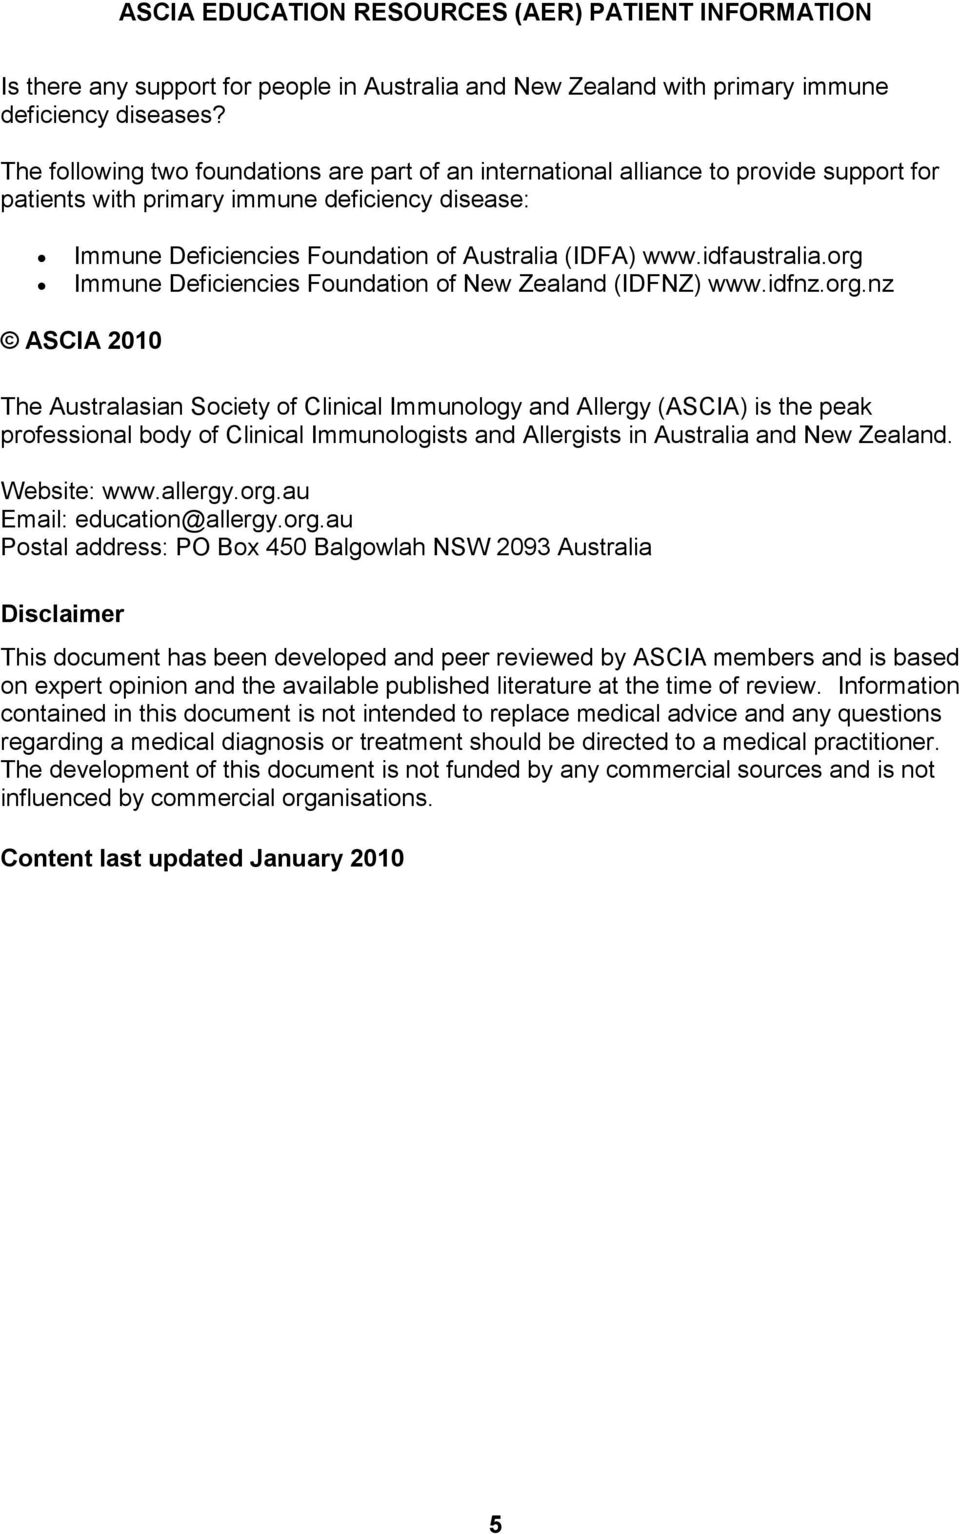 idfaustralia.org Immune Deficiencies Foundation of New Zealand (IDFNZ) www.idfnz.org.nz ASCIA 2010 The Australasian Society of Clinical Immunology and Allergy (ASCIA) is the peak professional body of Clinical Immunologists and Allergists in Australia and New Zealand.